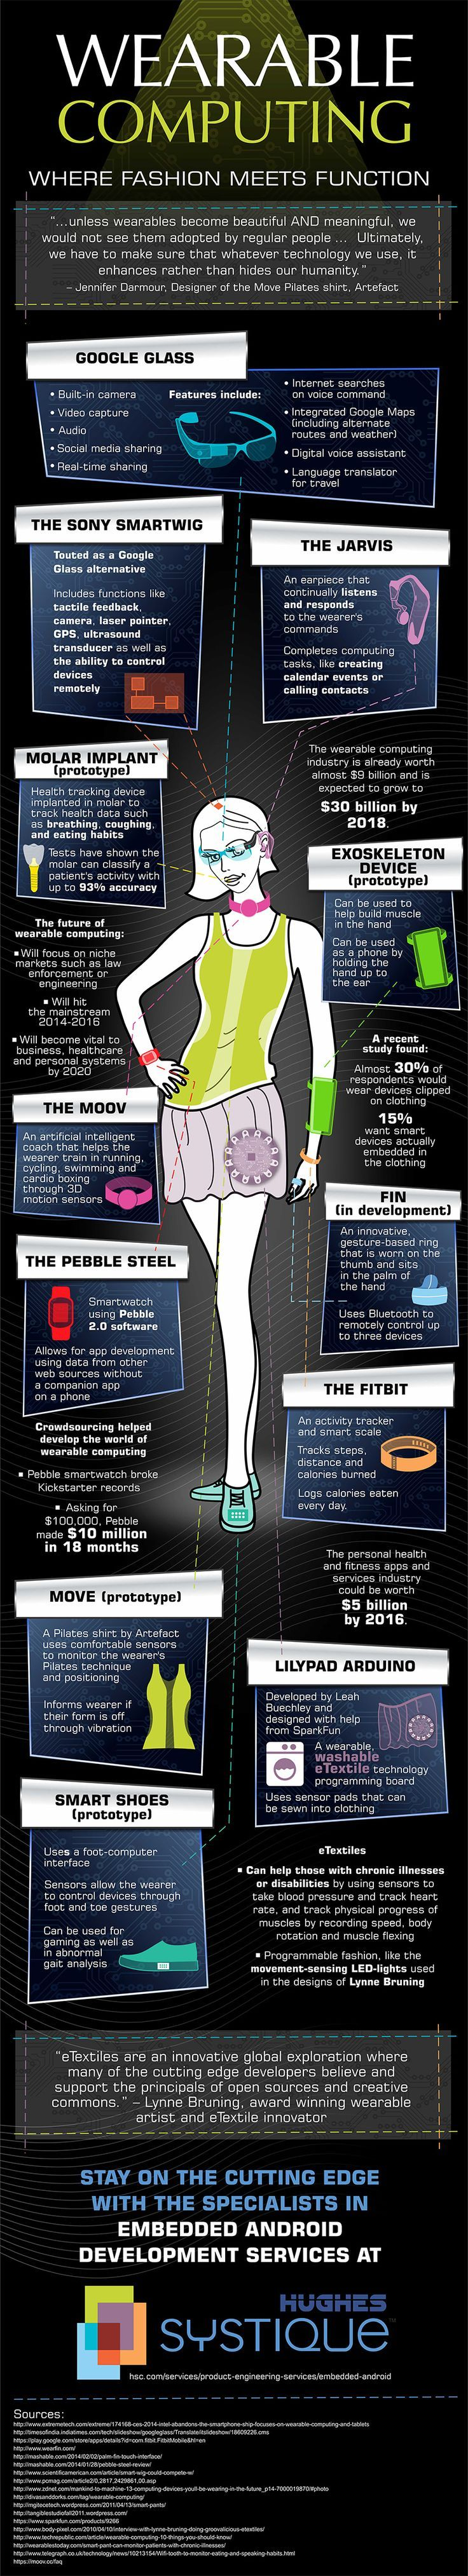 Wearable Computing: How Android Will Soon Be Embedded In Our Fashion Accessories [by Hughes Systique™ -- via #tipsographic]. More at http://tipsographic.com